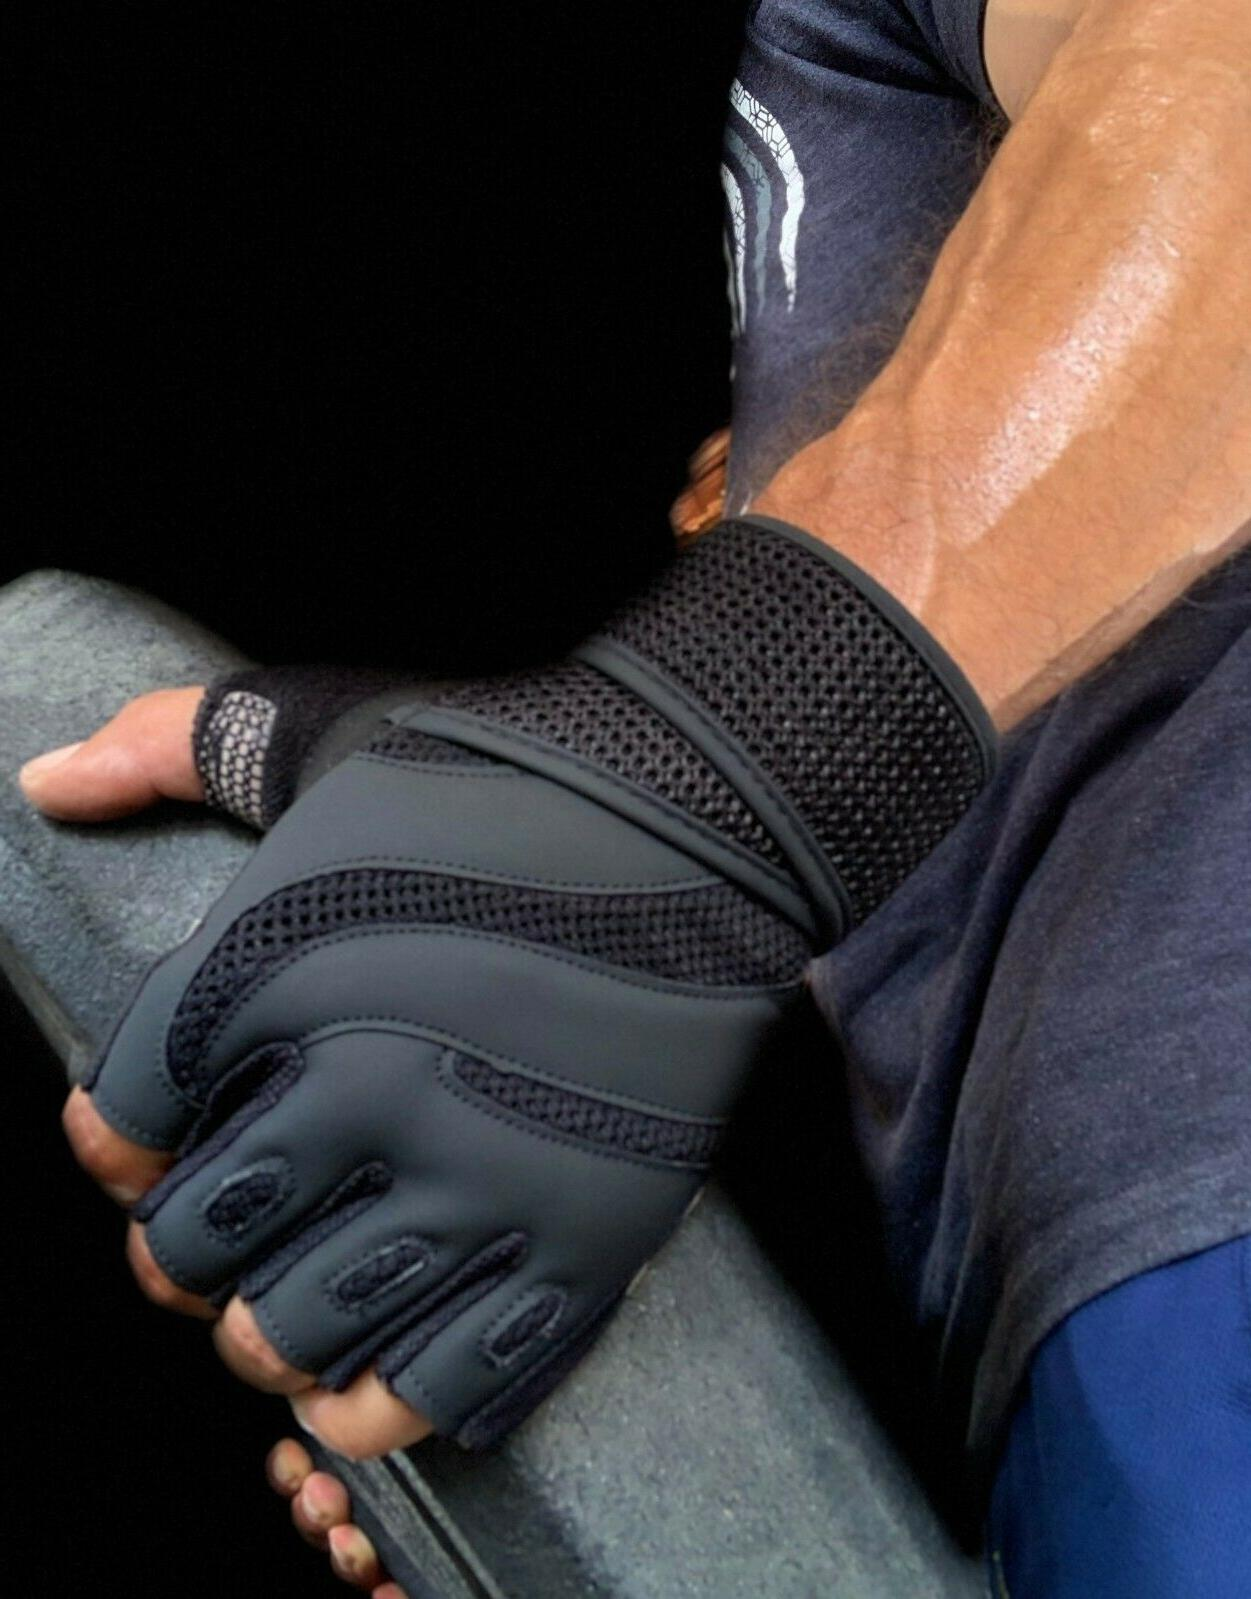 Weight Lifting Gloves Workout Gym Exercise Training Wrist St